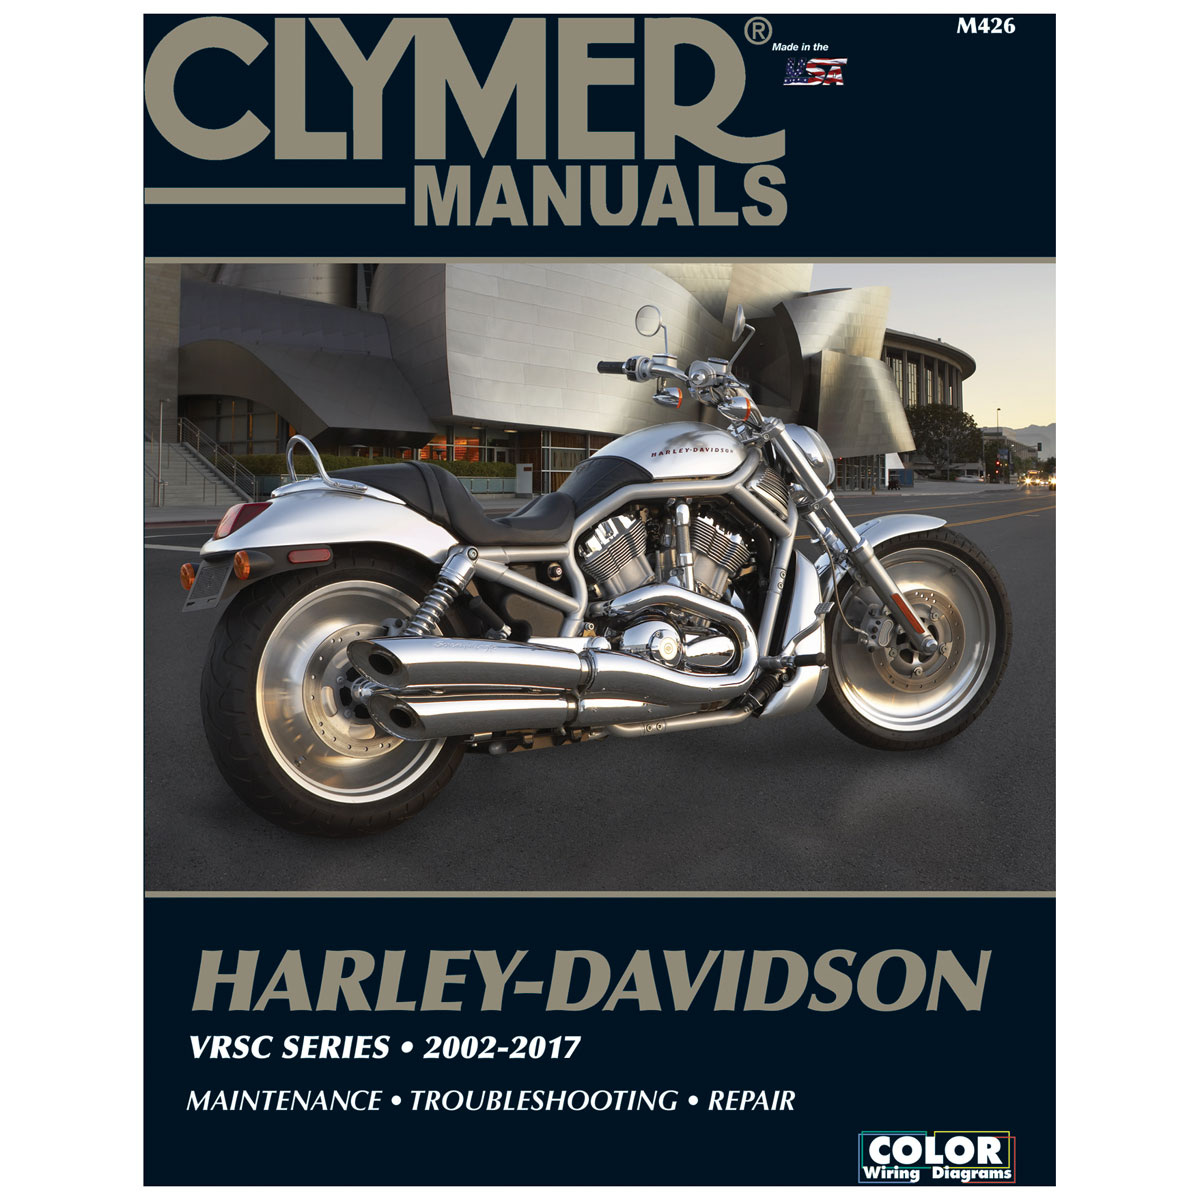 Clymer V-Rod Repair Manual - M426 | JPCycles.com on husaberg wiring diagram, 2000 harley wiring diagram, marine boat wiring diagram, ktm exc wiring diagram, ktm 450 wiring diagram, simple harley wiring diagram, cf moto wiring diagram, rupp snowmobile wiring diagram, harley wiring diagrams online, tomos wiring diagram, 2003 harley wiring diagram, harley touring wiring diagram, 2001 sportster ignition system diagram, nissan wiring diagram, harley softail wiring diagram, harley sportster wiring diagram, honda motorcycle wire diagram, harley bar and shield dxf, harley wiring diagram for dummies, harley speedometer wiring,